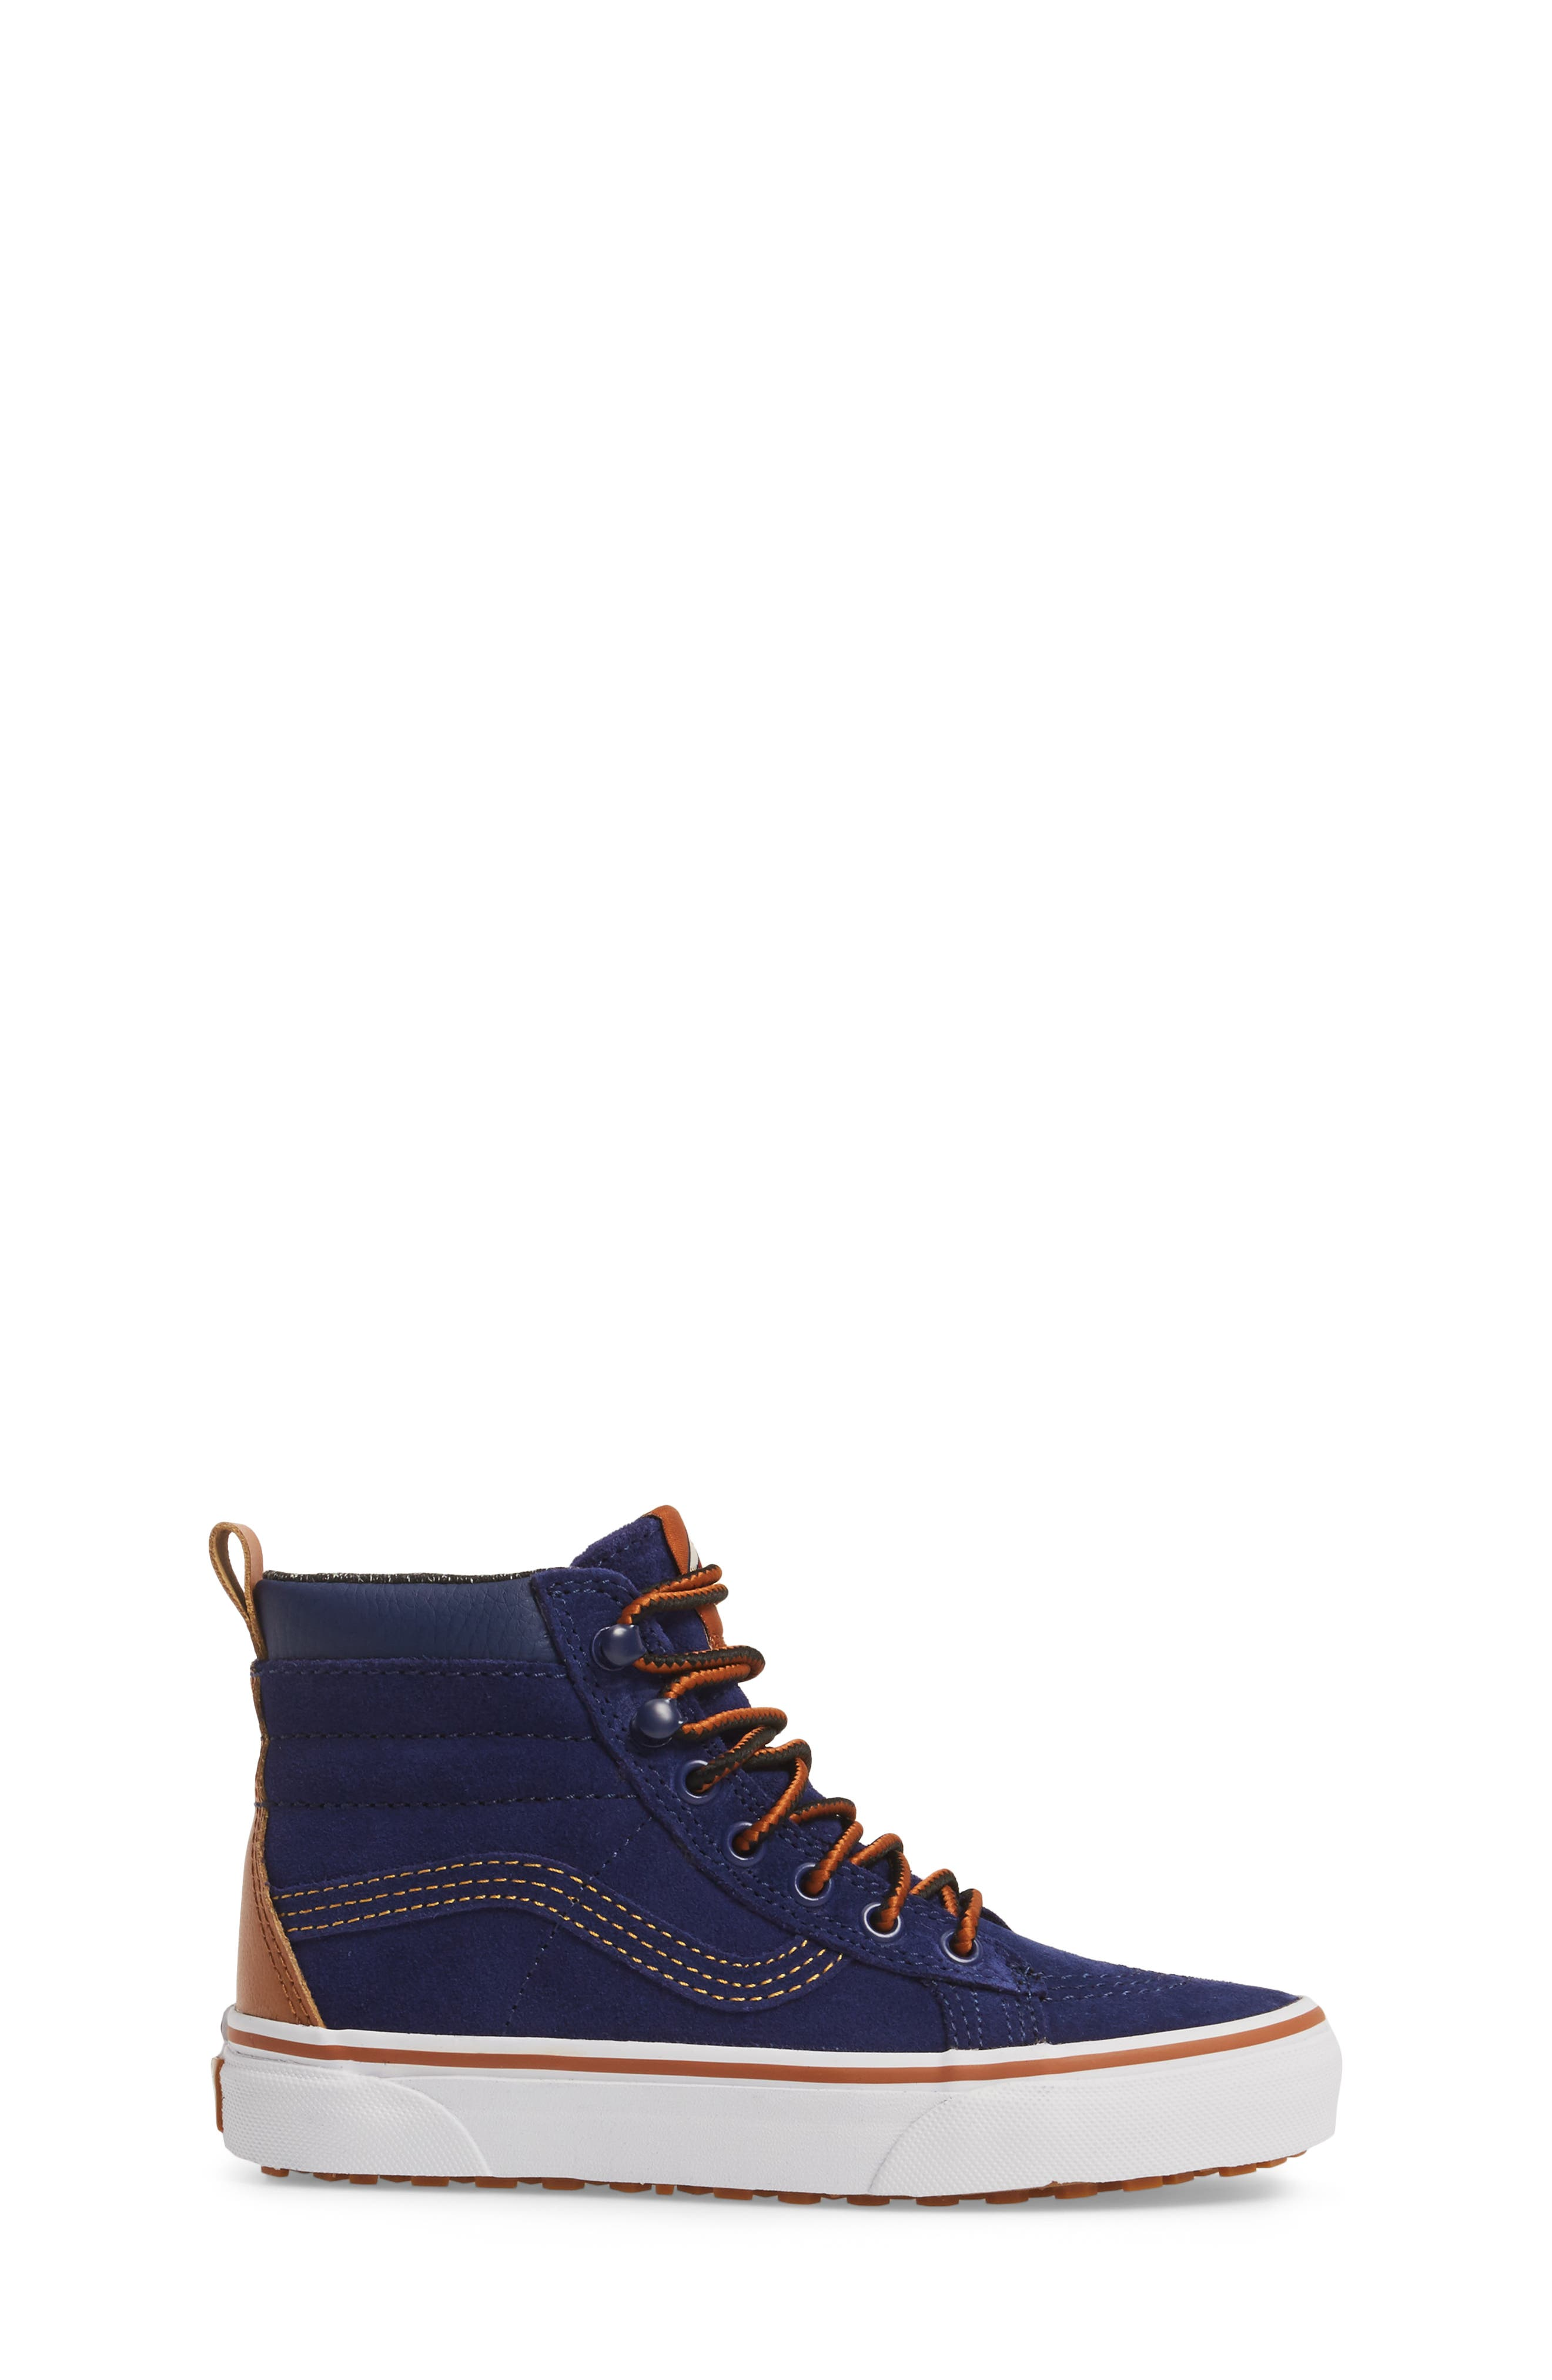 SK8-Hi Sneaker,                             Alternate thumbnail 26, color,